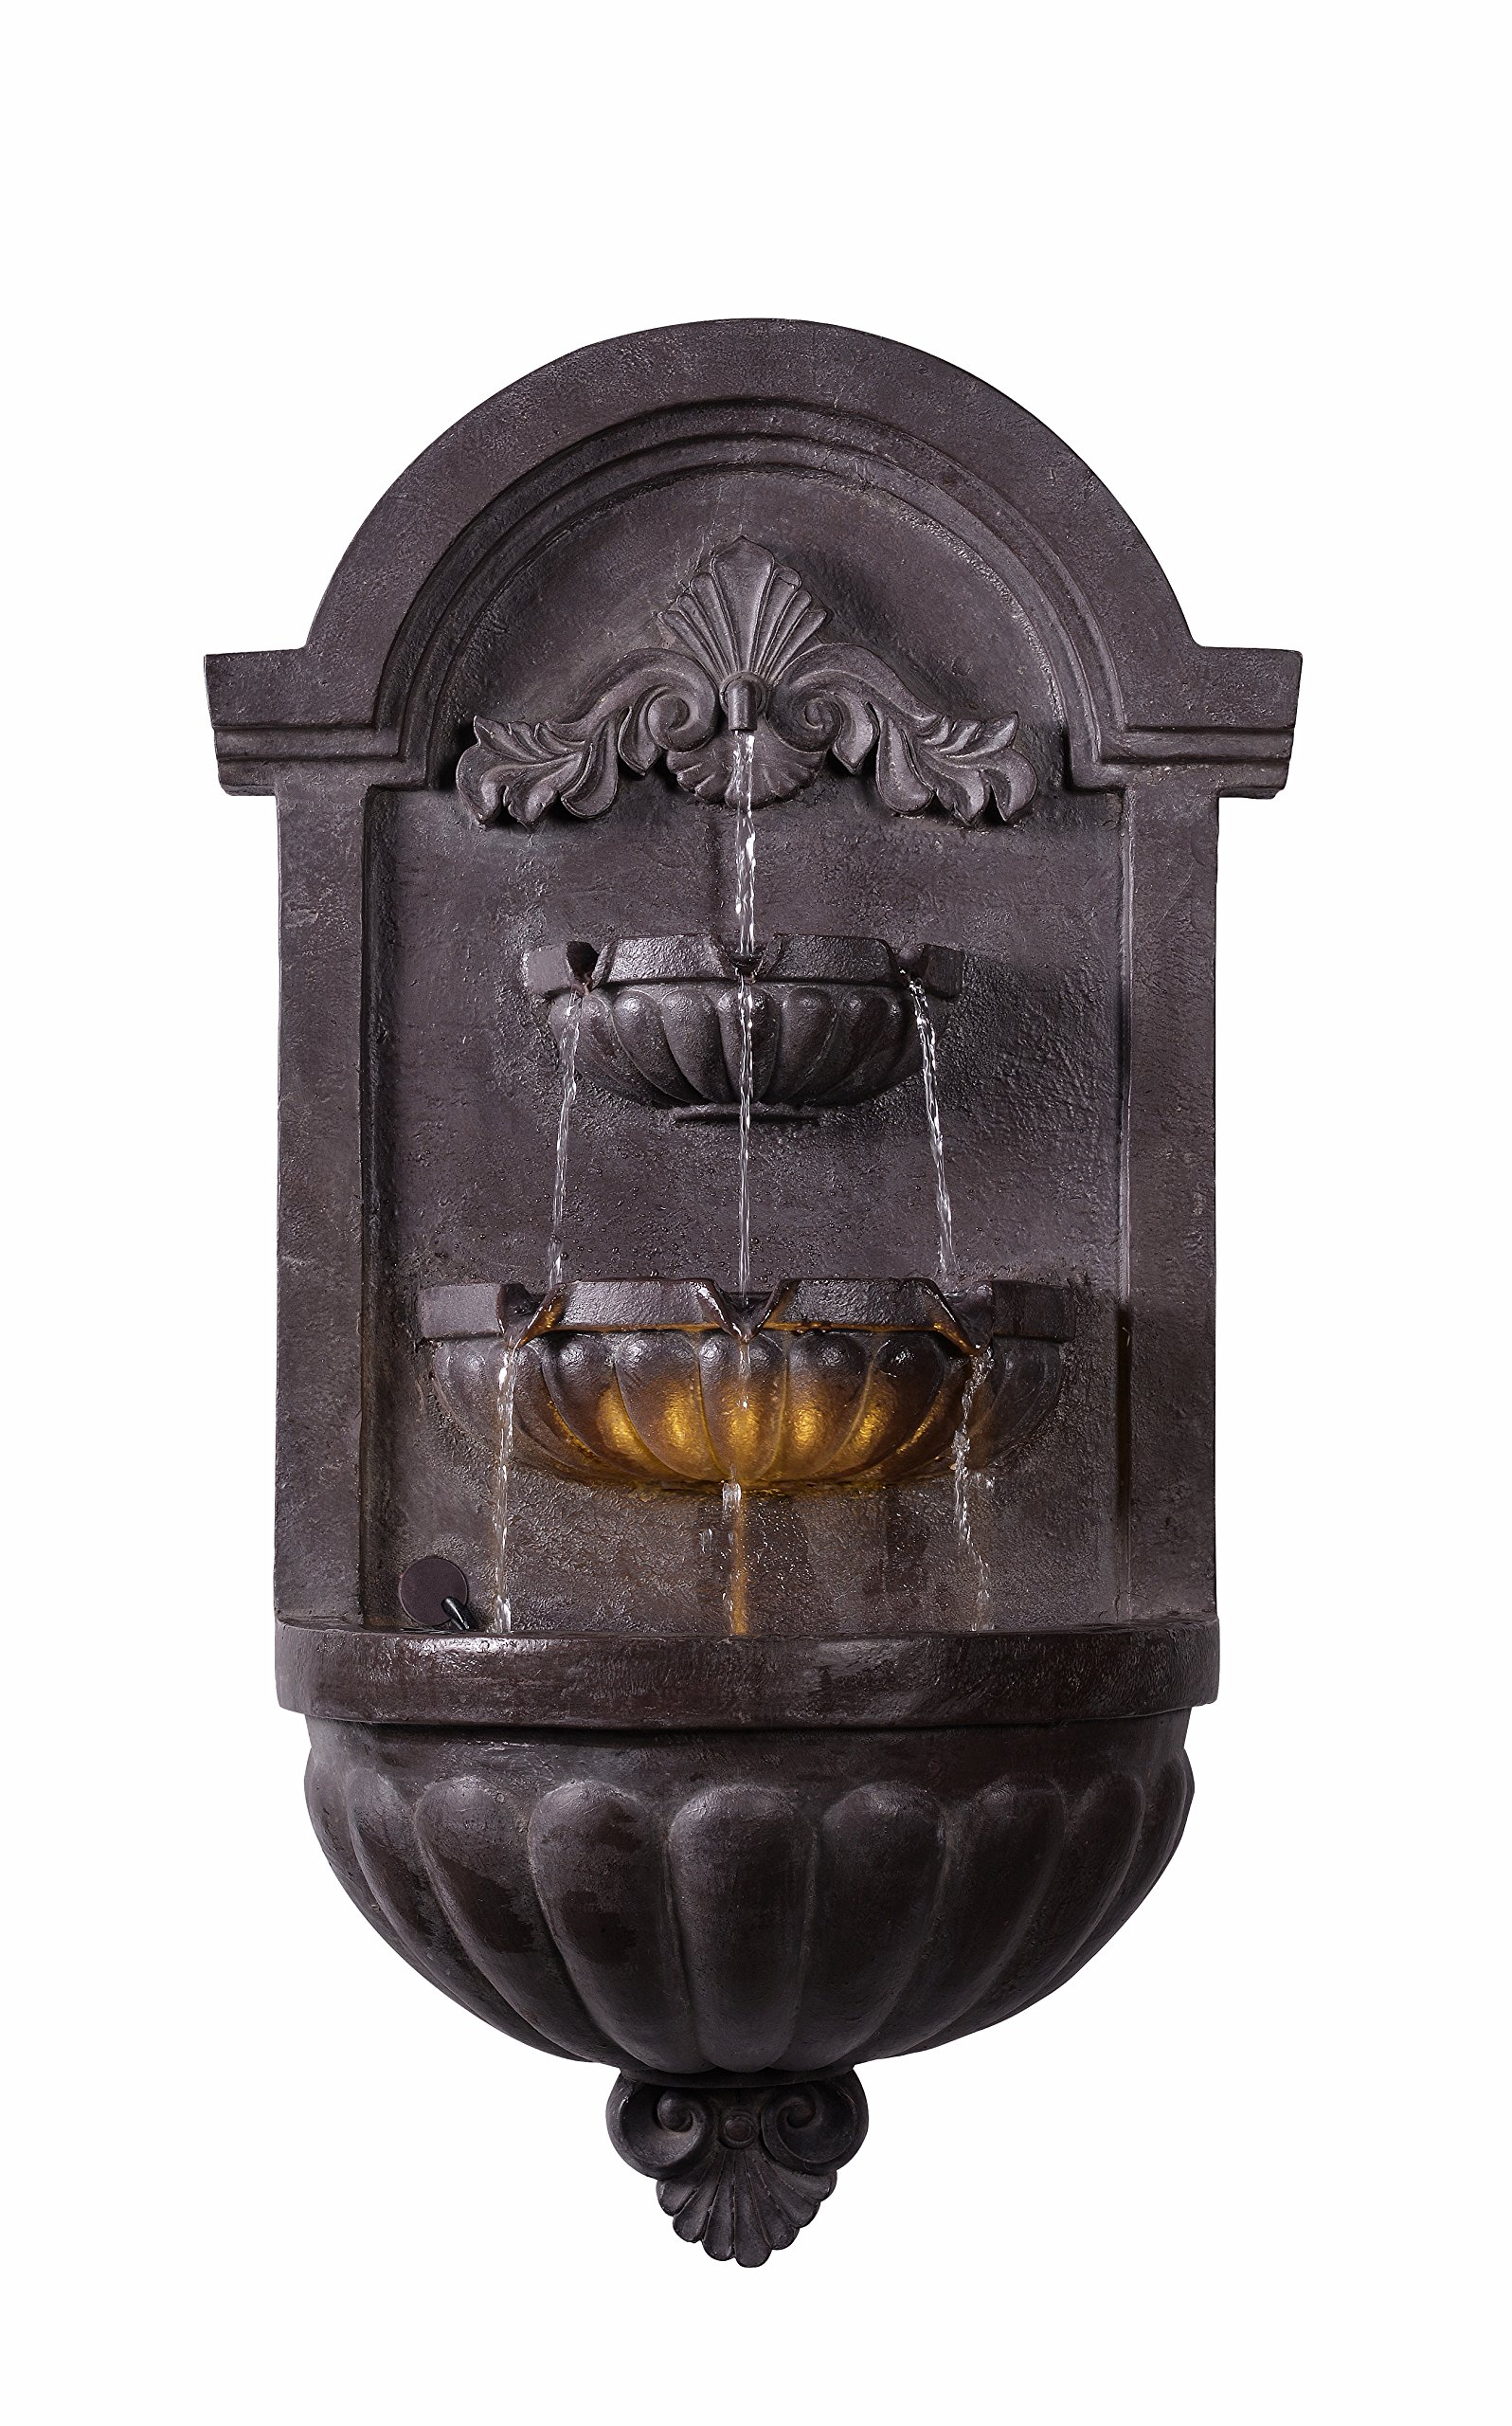 Kenroy Home Classic Indoor/ Outdoor Wall Fountain ,35 Inch Height, 19.5 Inch Width, 9 Inch Ext. with Plum Bronze Finish - TRADITIONAL VILLA RESIN FOUNTAIN: This dark plum bronze patio fountain with a floral design matches the textured surface paint and helps to resist fading and potential chipping over time; Perfect for installing outdoors on the side of your shed or your fence, or indoors to use as a functional piece of porch or garden wall art DIMENSIONS: This water fountain is 35 Inch in height, 20 Inch in width and has a 10 Inch extension LED LIGHTING: The dynamic LED lighting creates an ambient light glow from within the fountain basin and can be operated independently from the pump - patio, outdoor-decor, fountains - 91EtY9PvjiL -